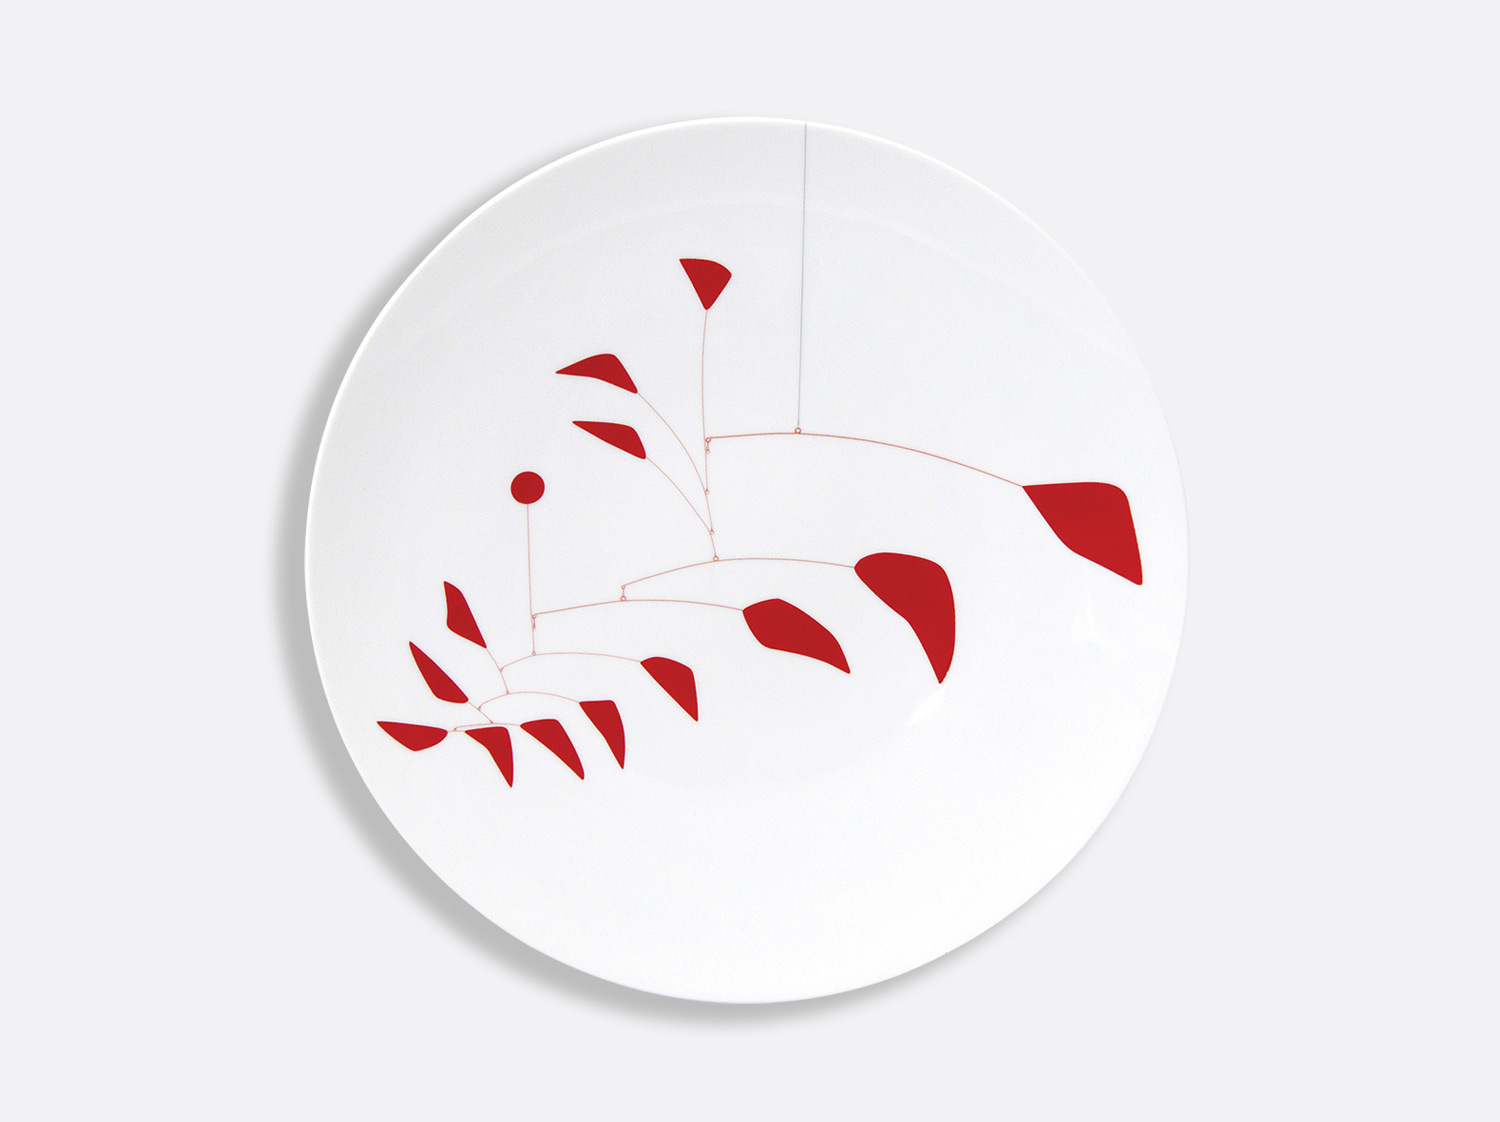 Collectioncalder assiette26 2 alexandercalder